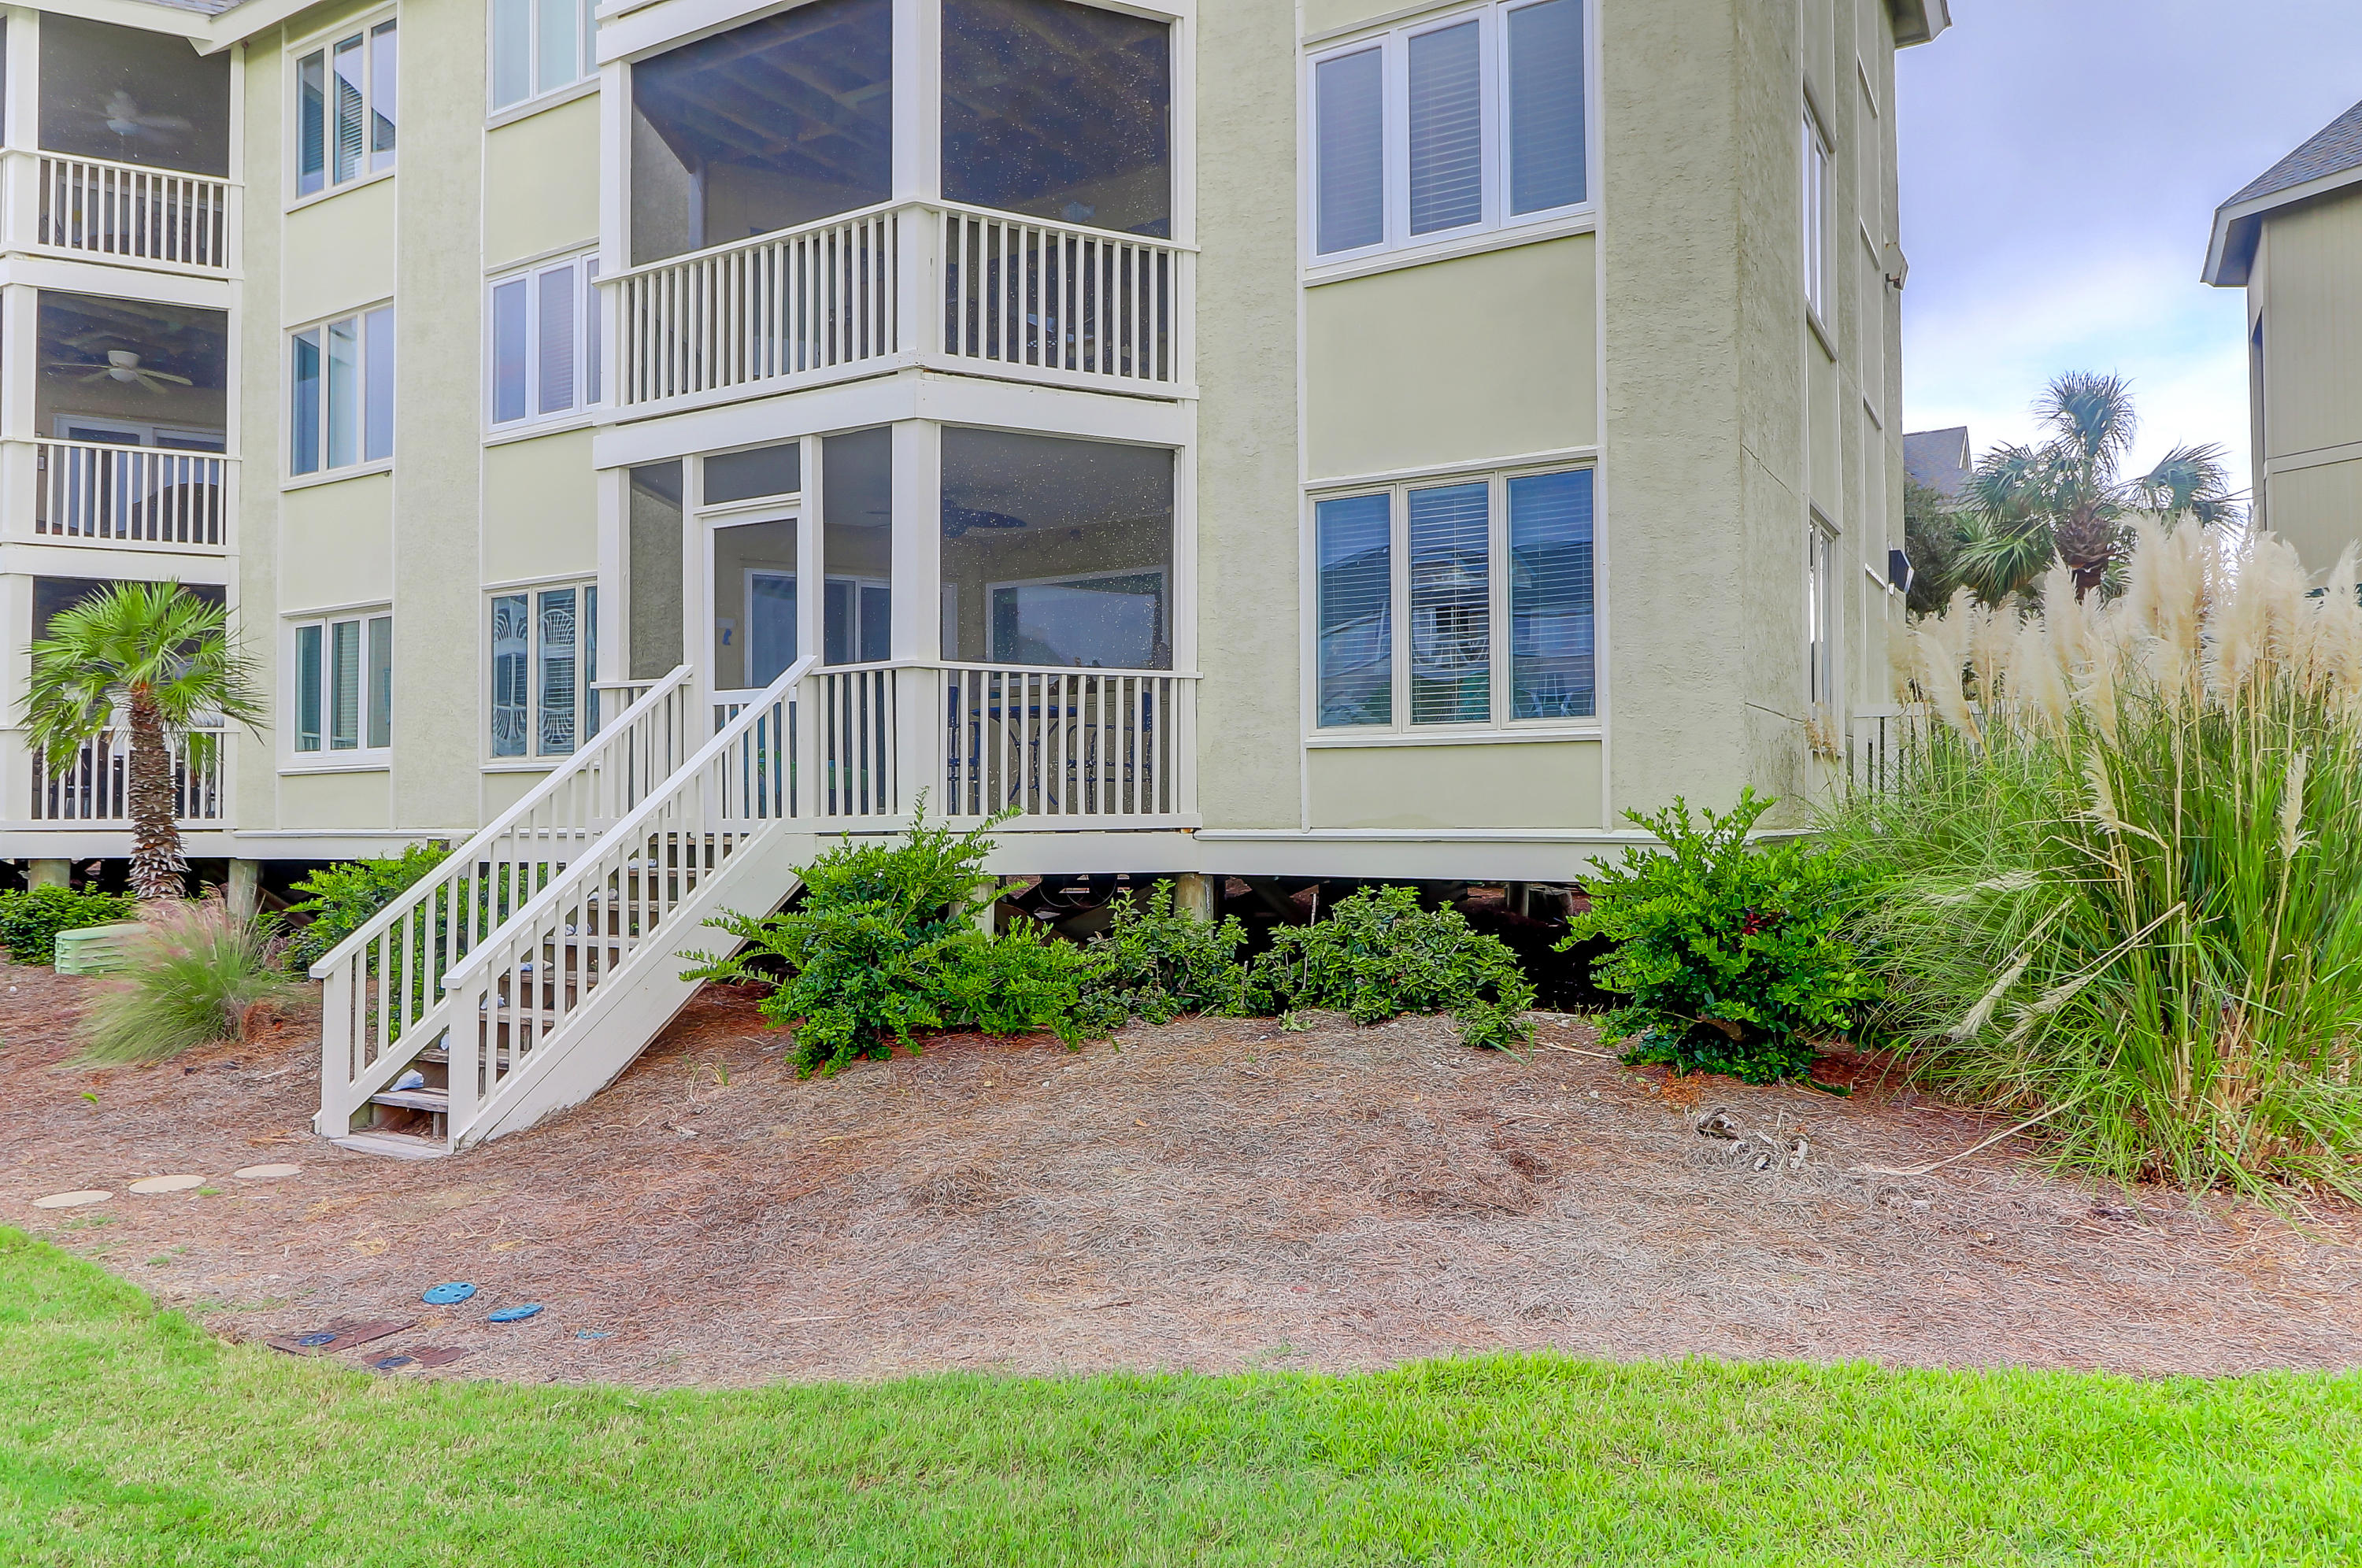 Wild Dunes Homes For Sale - 104 A Port O'Call, Isle of Palms, SC - 4